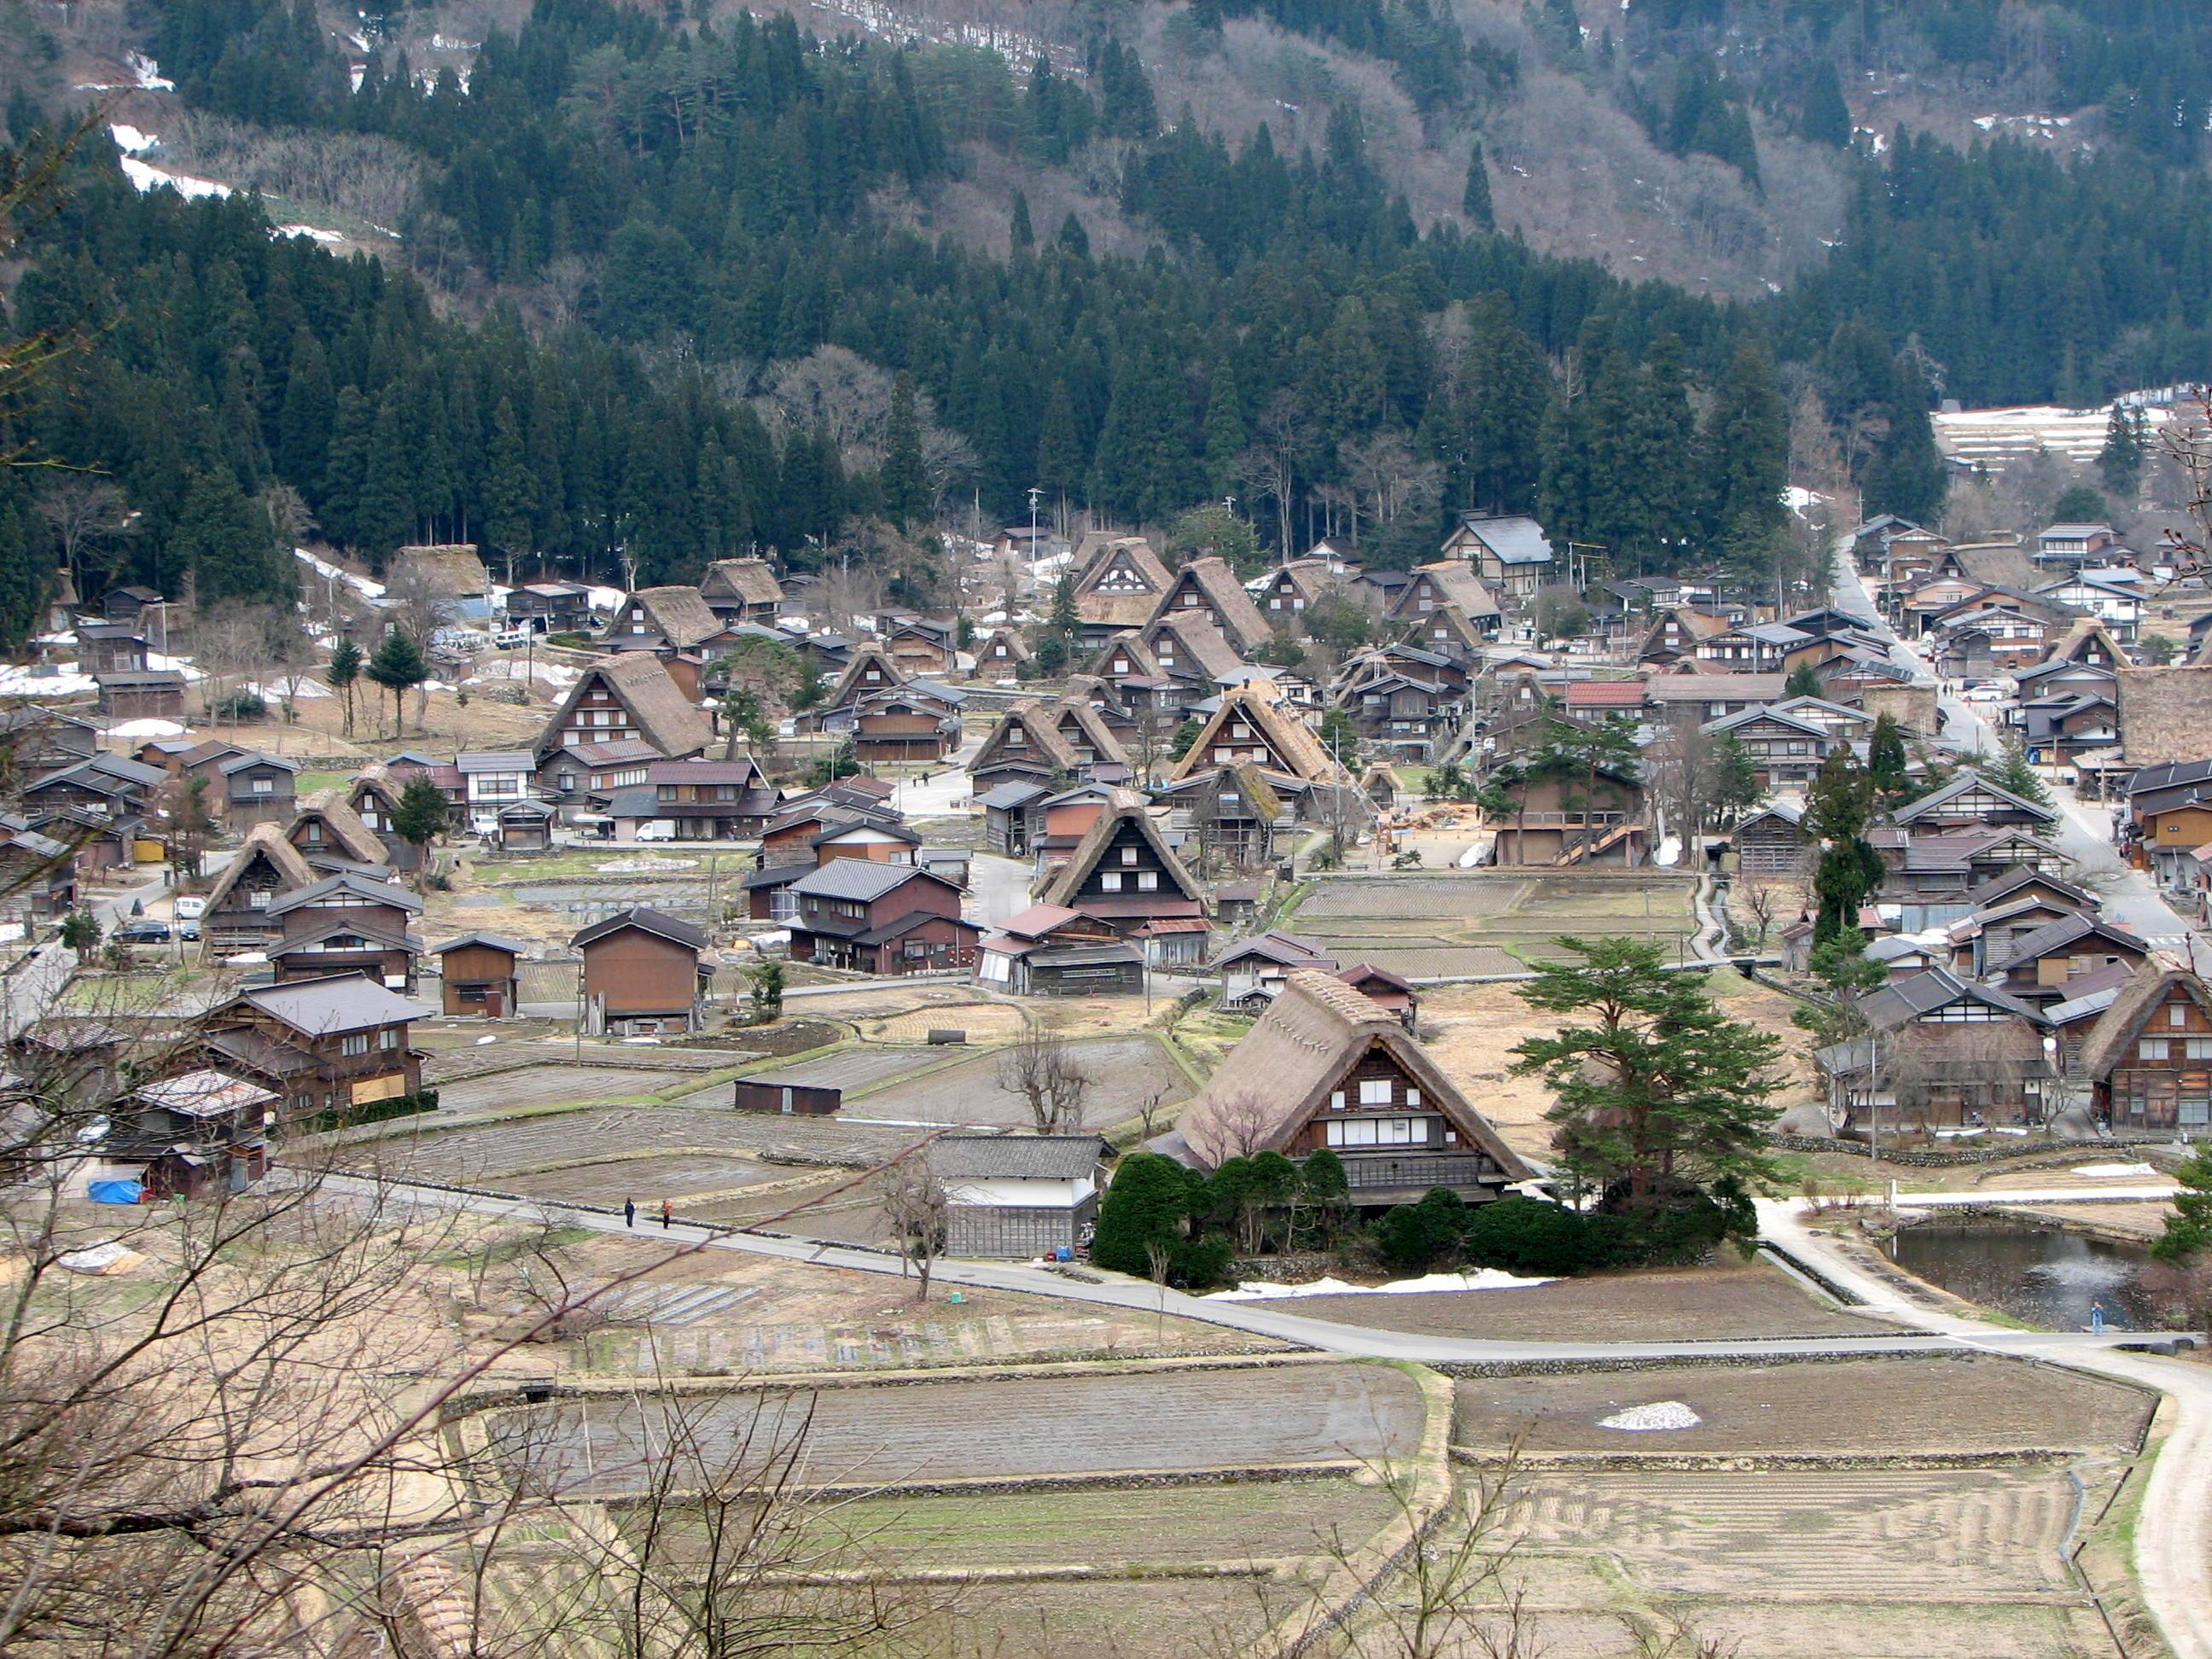 http://upload.wikimedia.org/wikipedia/commons/d/d5/Ogimachi_Village-02.jpg